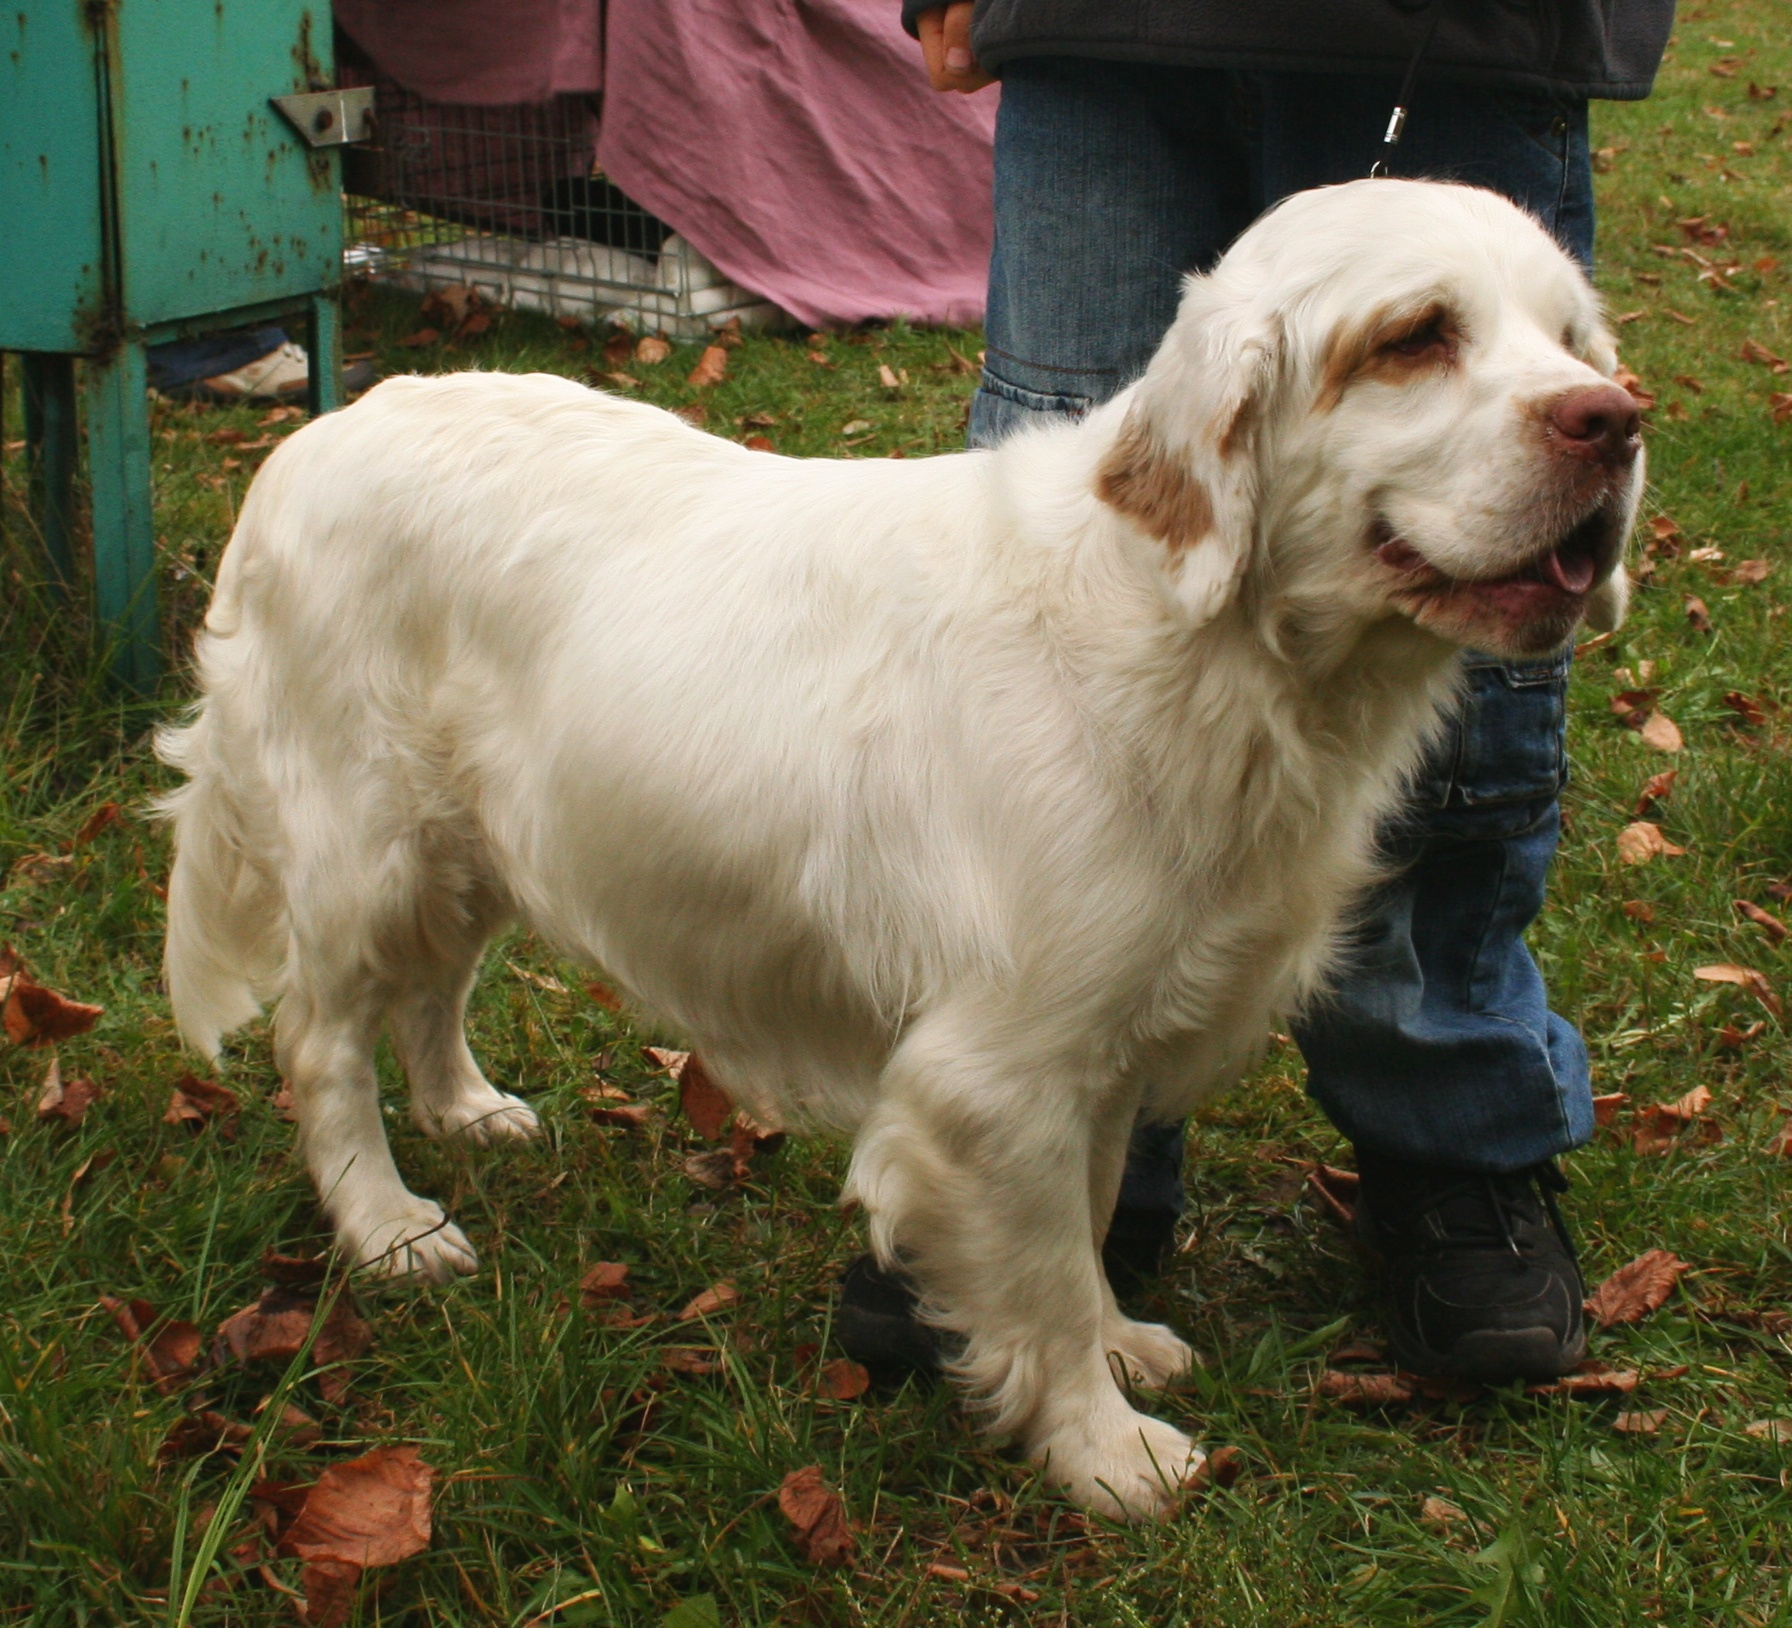 Lovely Clumber Spaniel dog wallpaper